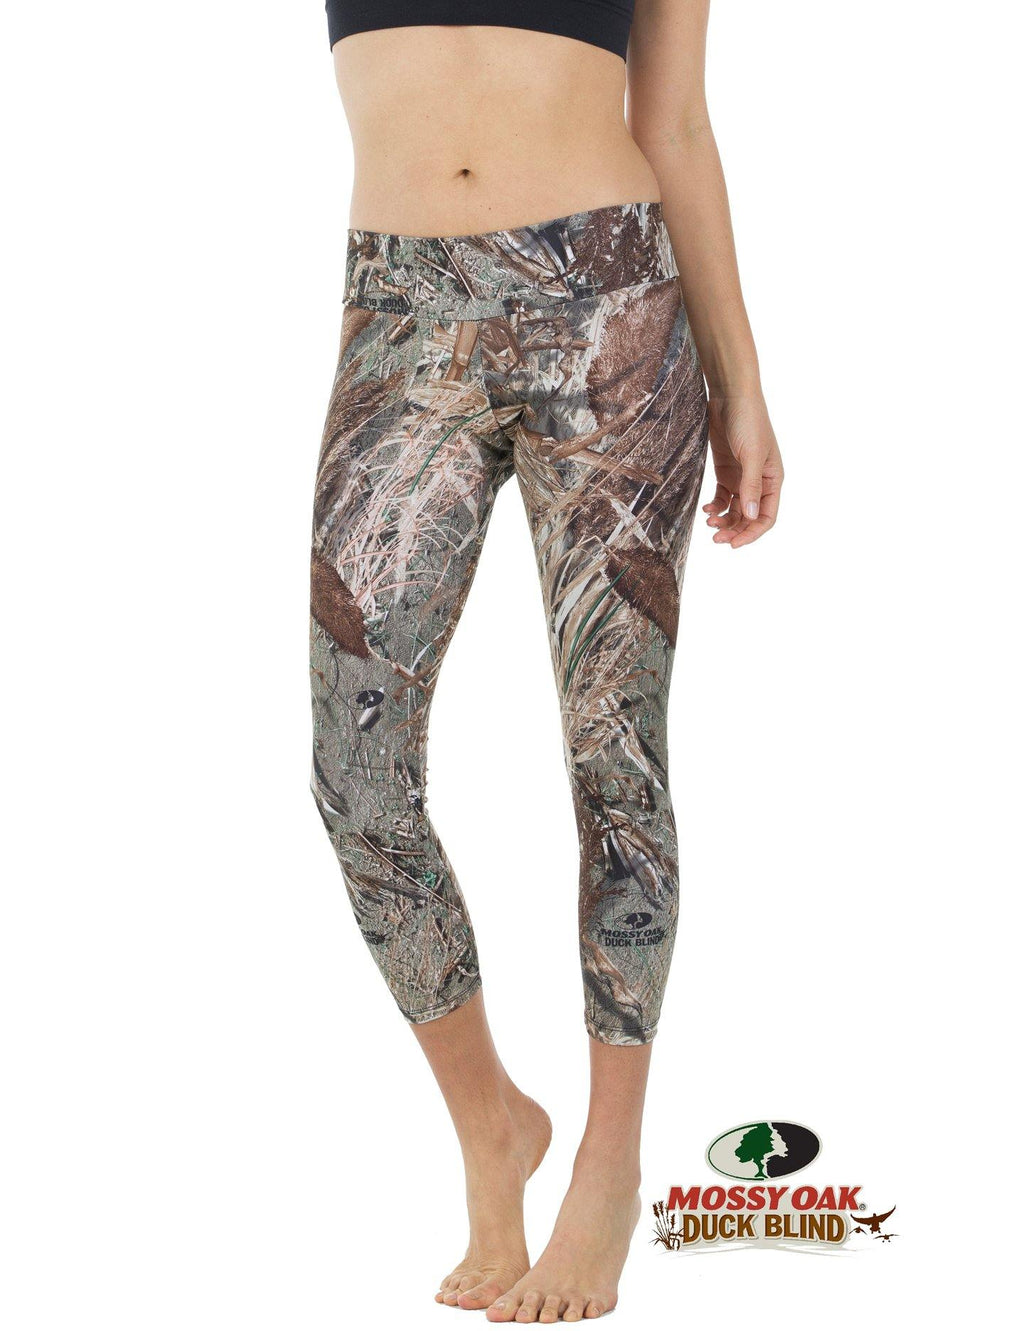 Apsara Leggings Low Waist Cropped, Mossy Oak Duck Blind